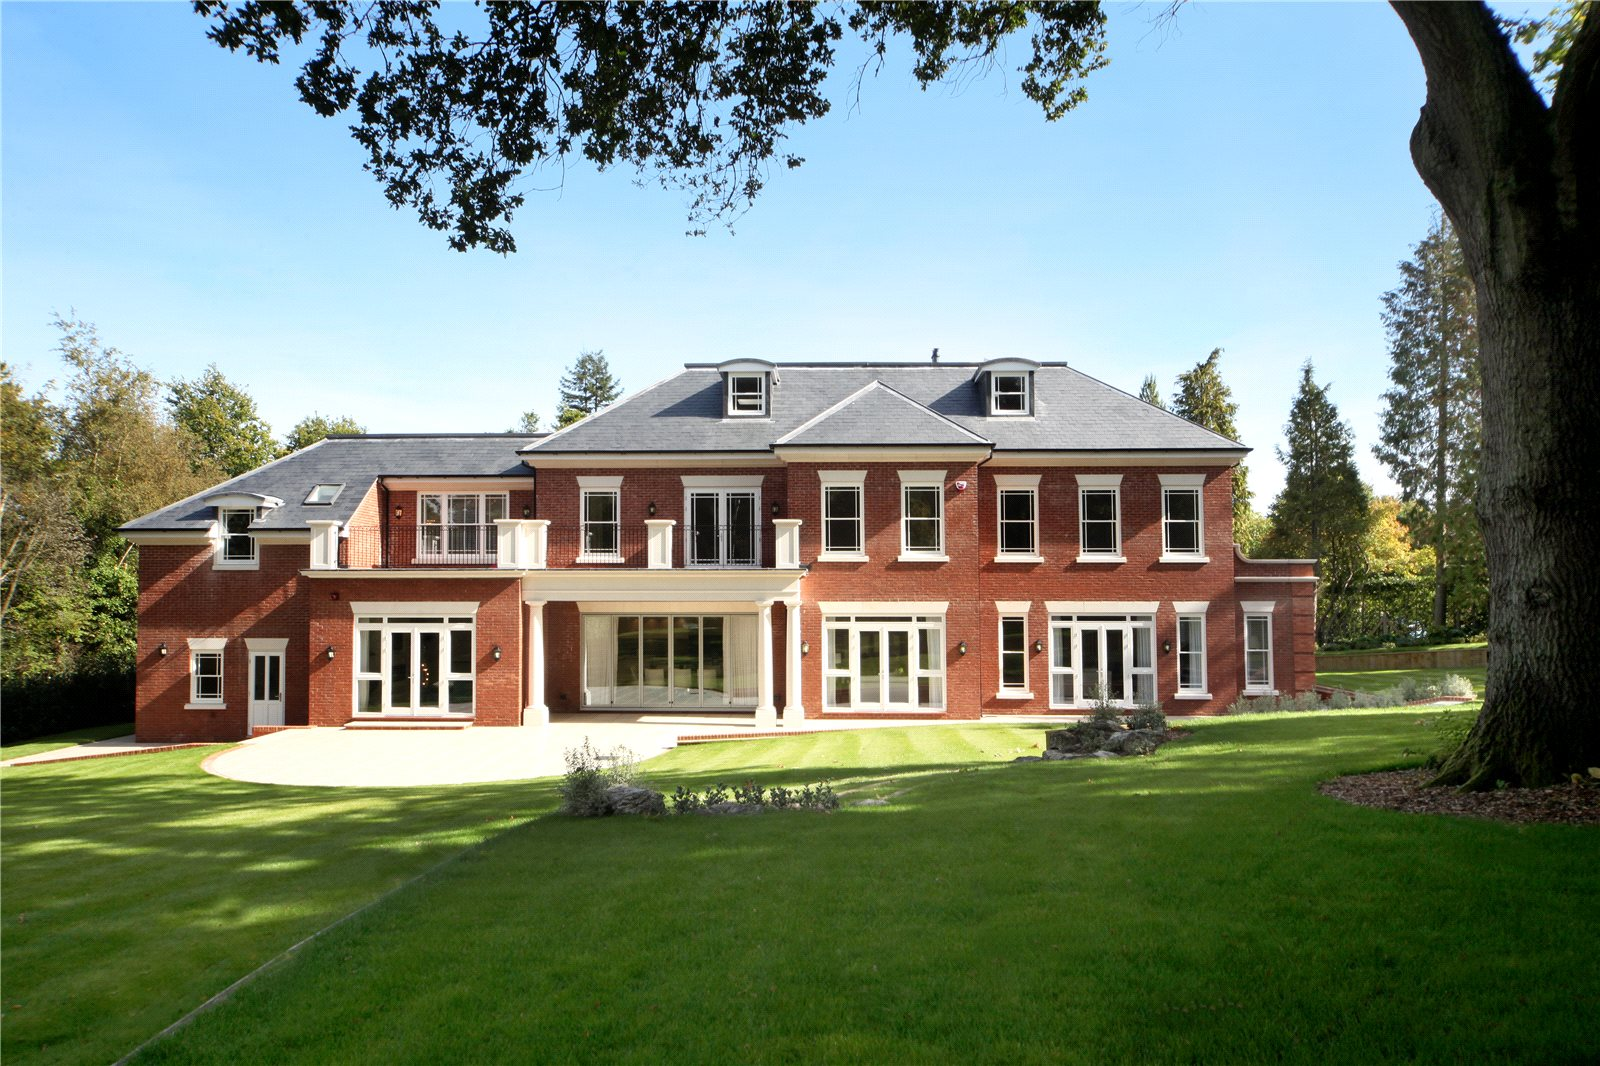 Single Family Home for Sale at Titlarks Hill, Sunningdale, Berkshire, SL5 Sunningdale, England